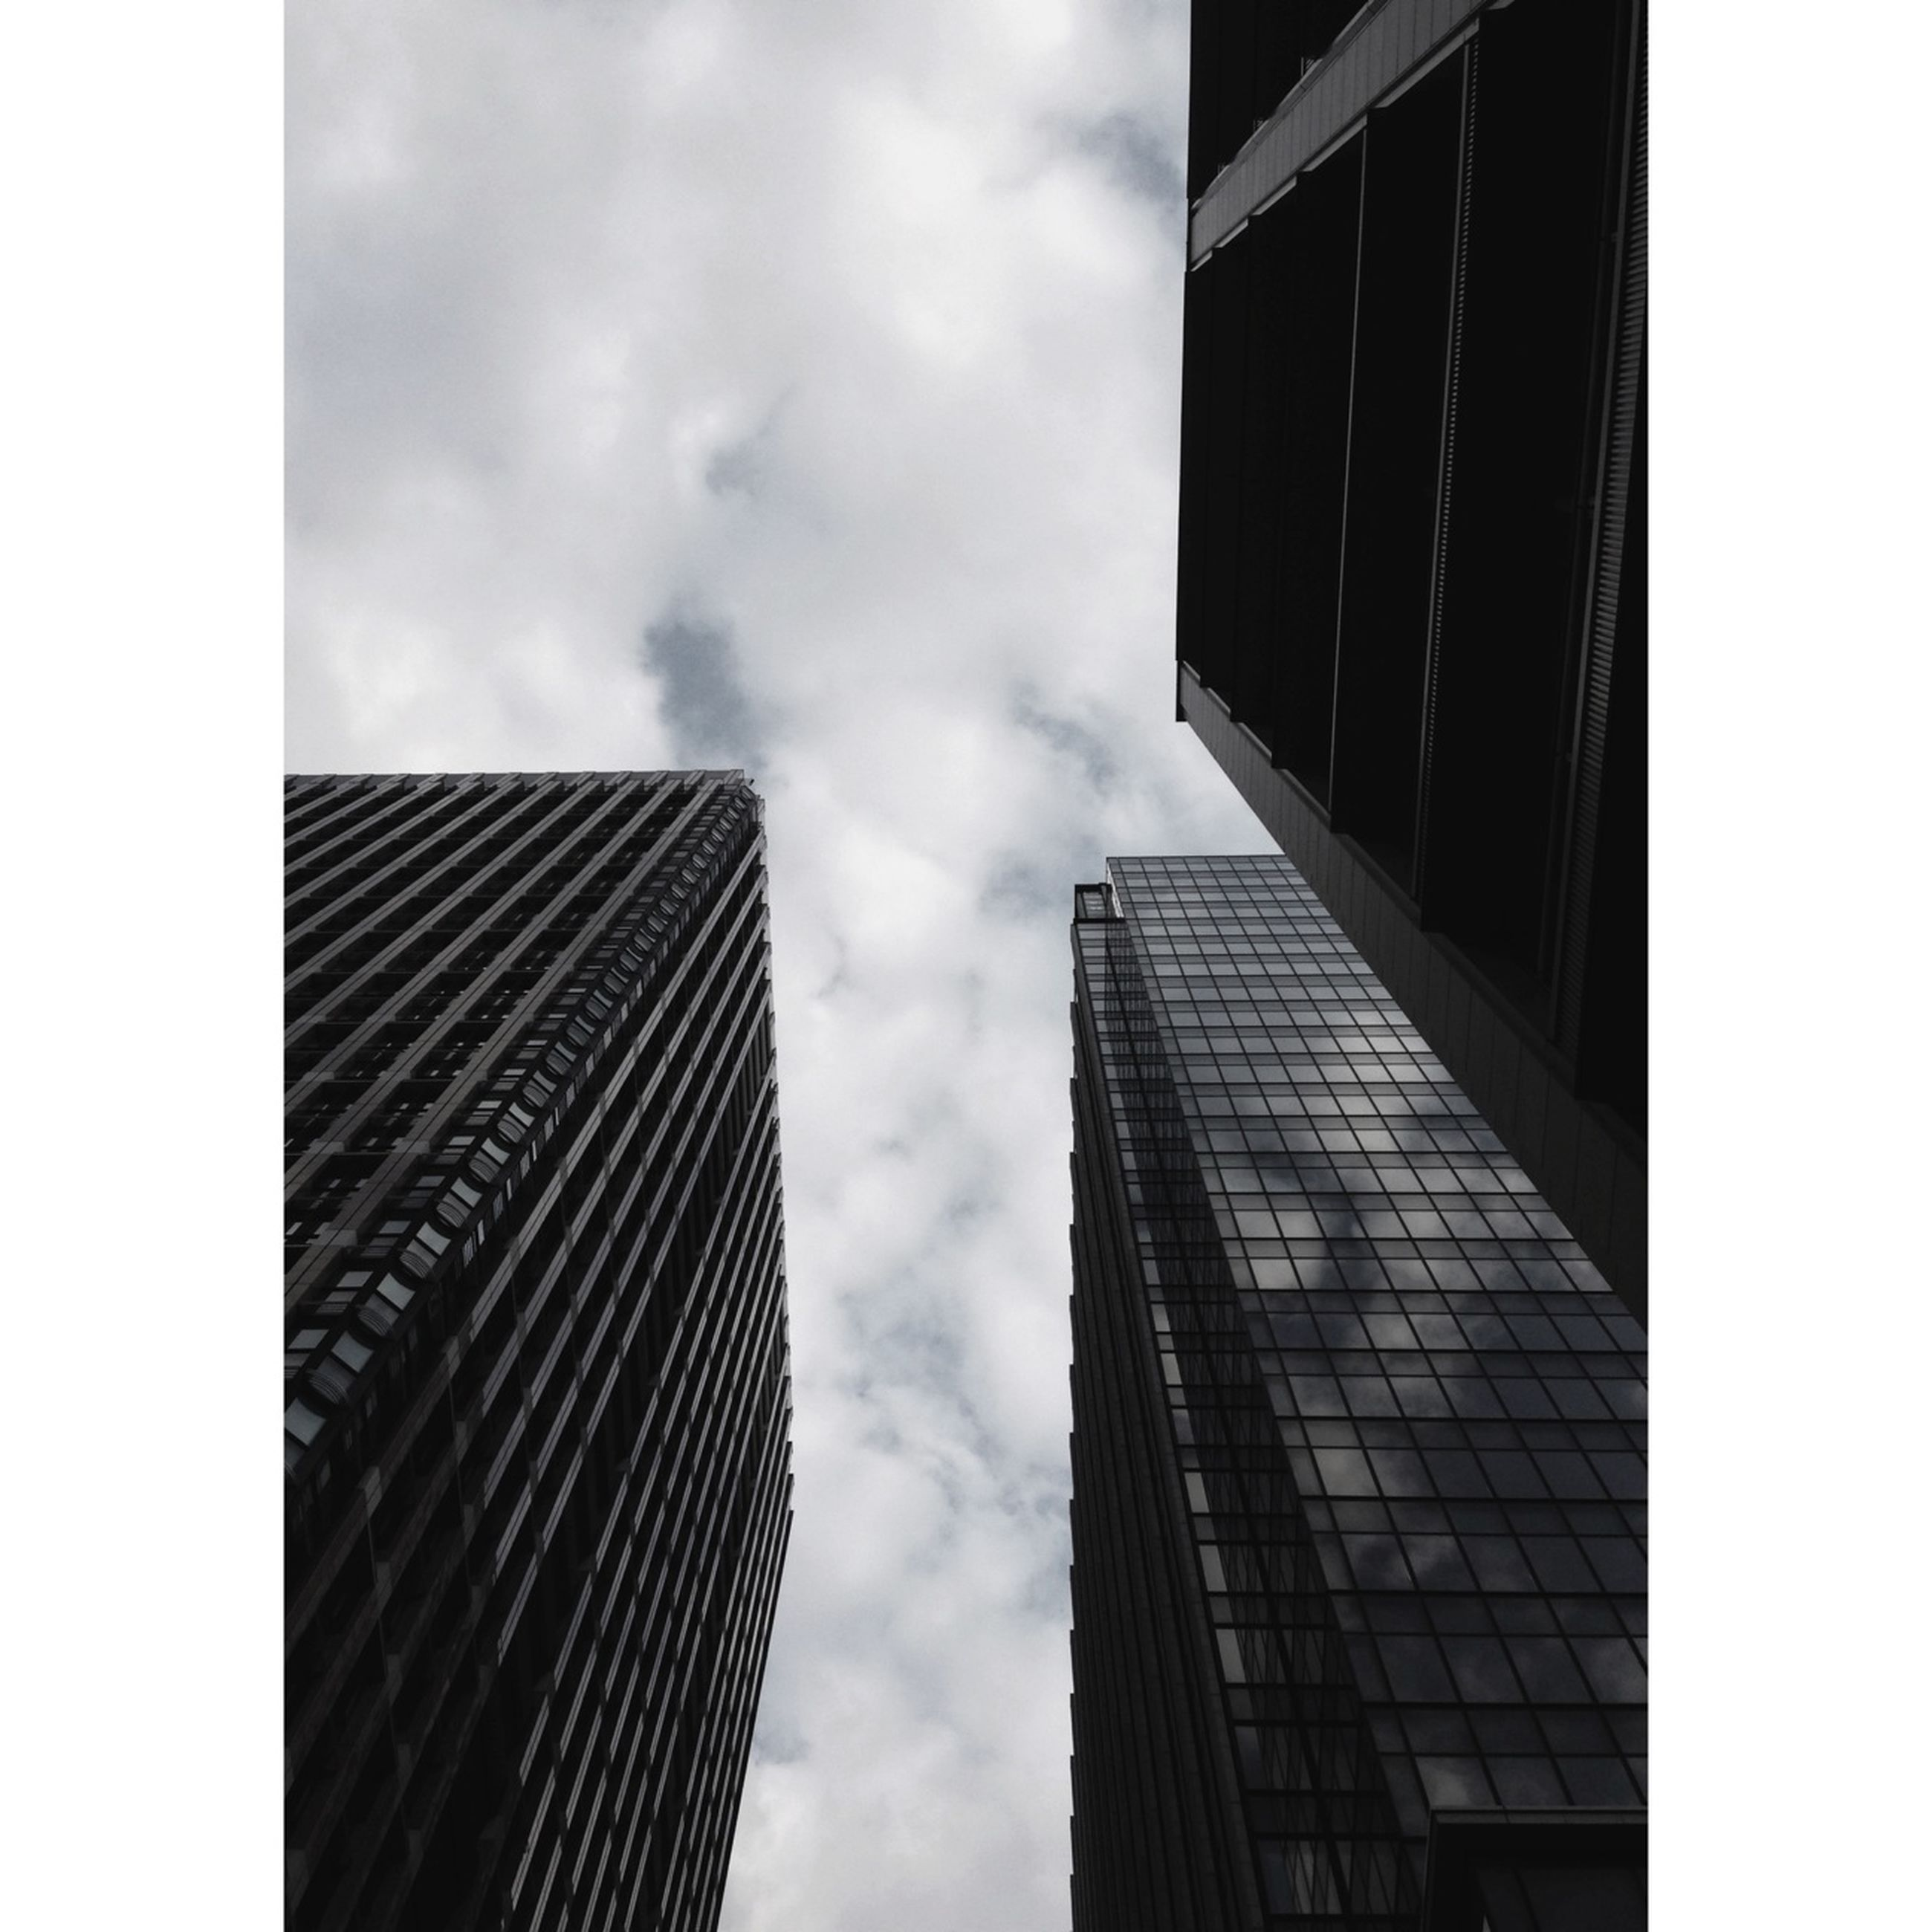 architecture, building exterior, built structure, low angle view, modern, office building, sky, skyscraper, city, tall - high, tower, building, glass - material, cloud - sky, reflection, tall, auto post production filter, window, directly below, cloud